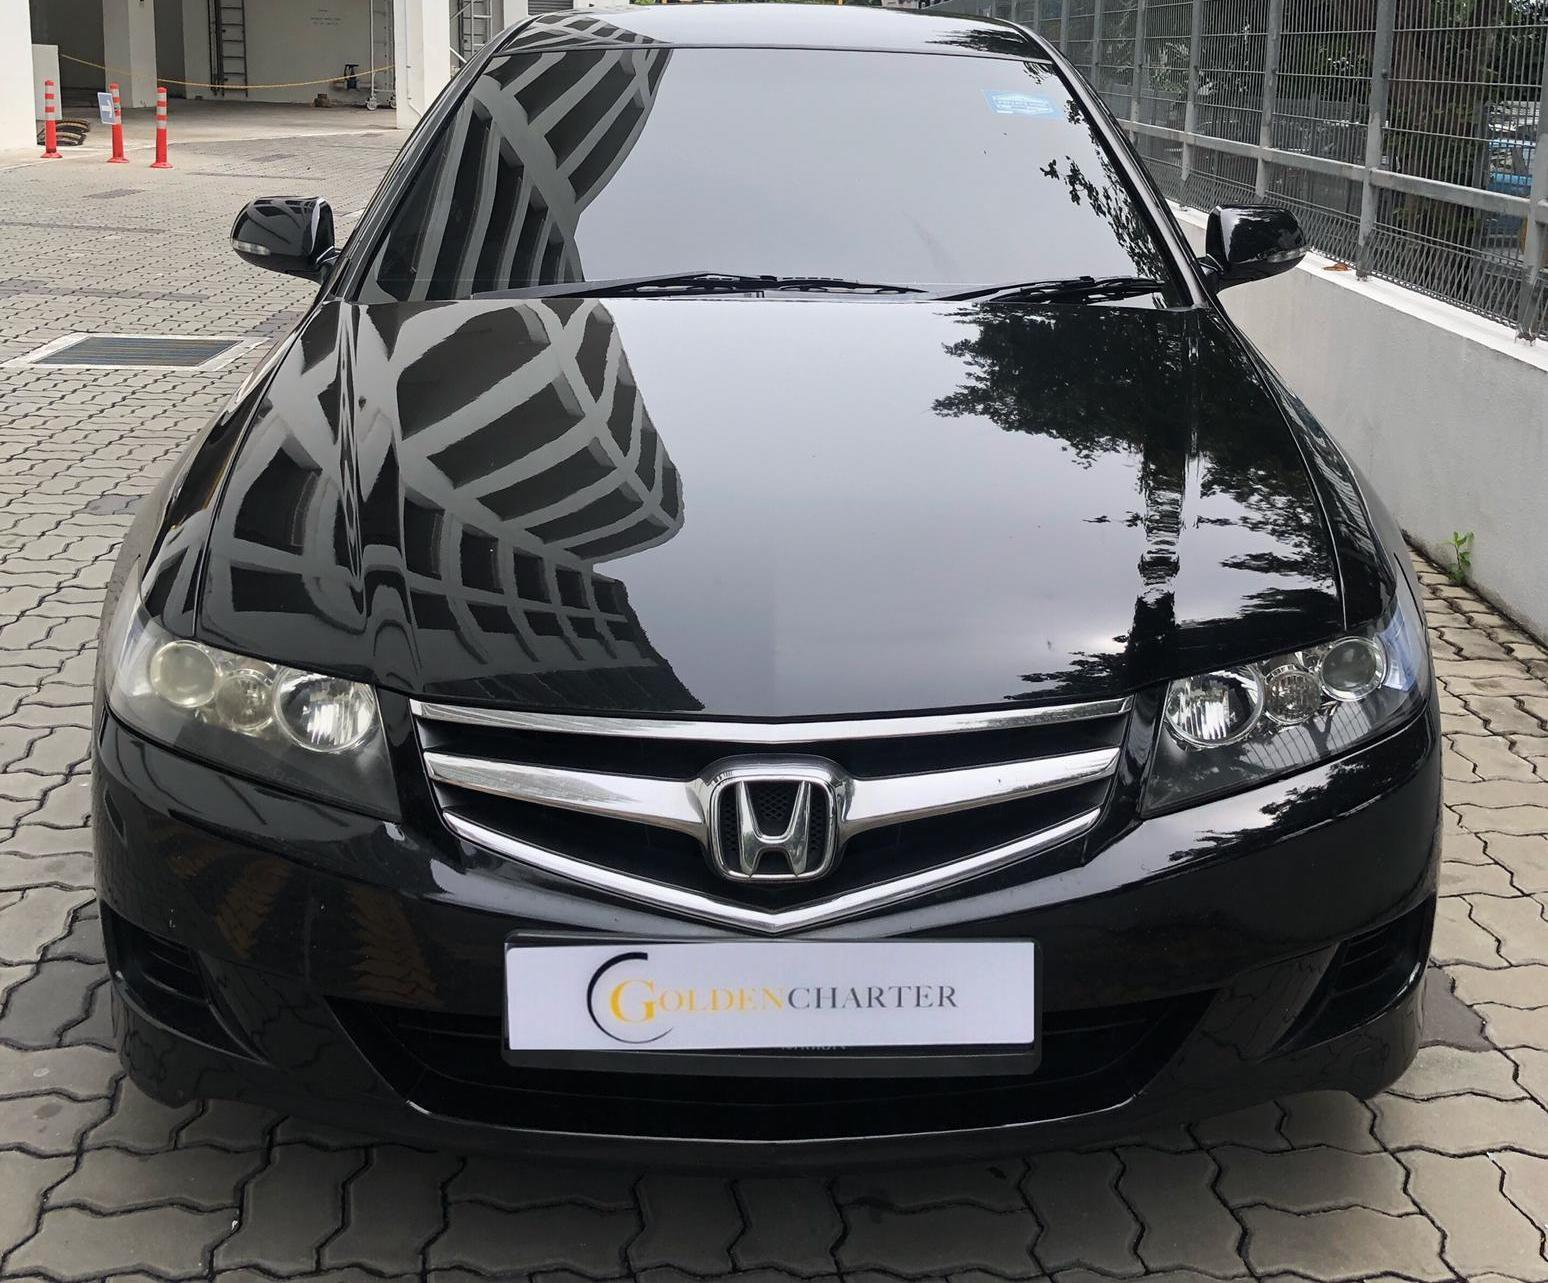 Honda Accord RENT PROMOTIOIN CHEAPEST RENTING OUT FOR Grab/Ryde/PersonalC